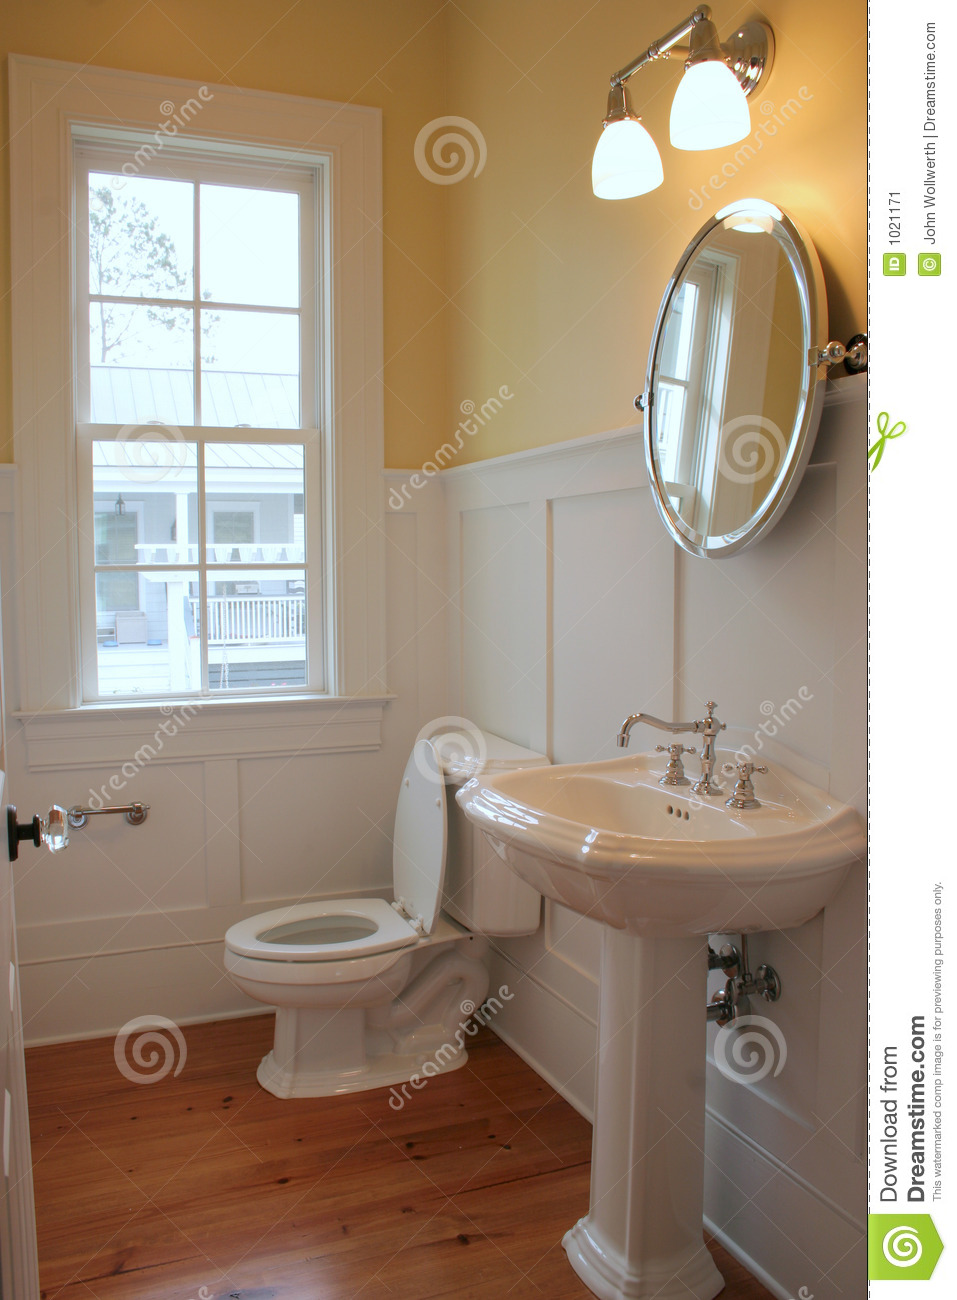 Simple Bathroom Stock Image Image 1021171